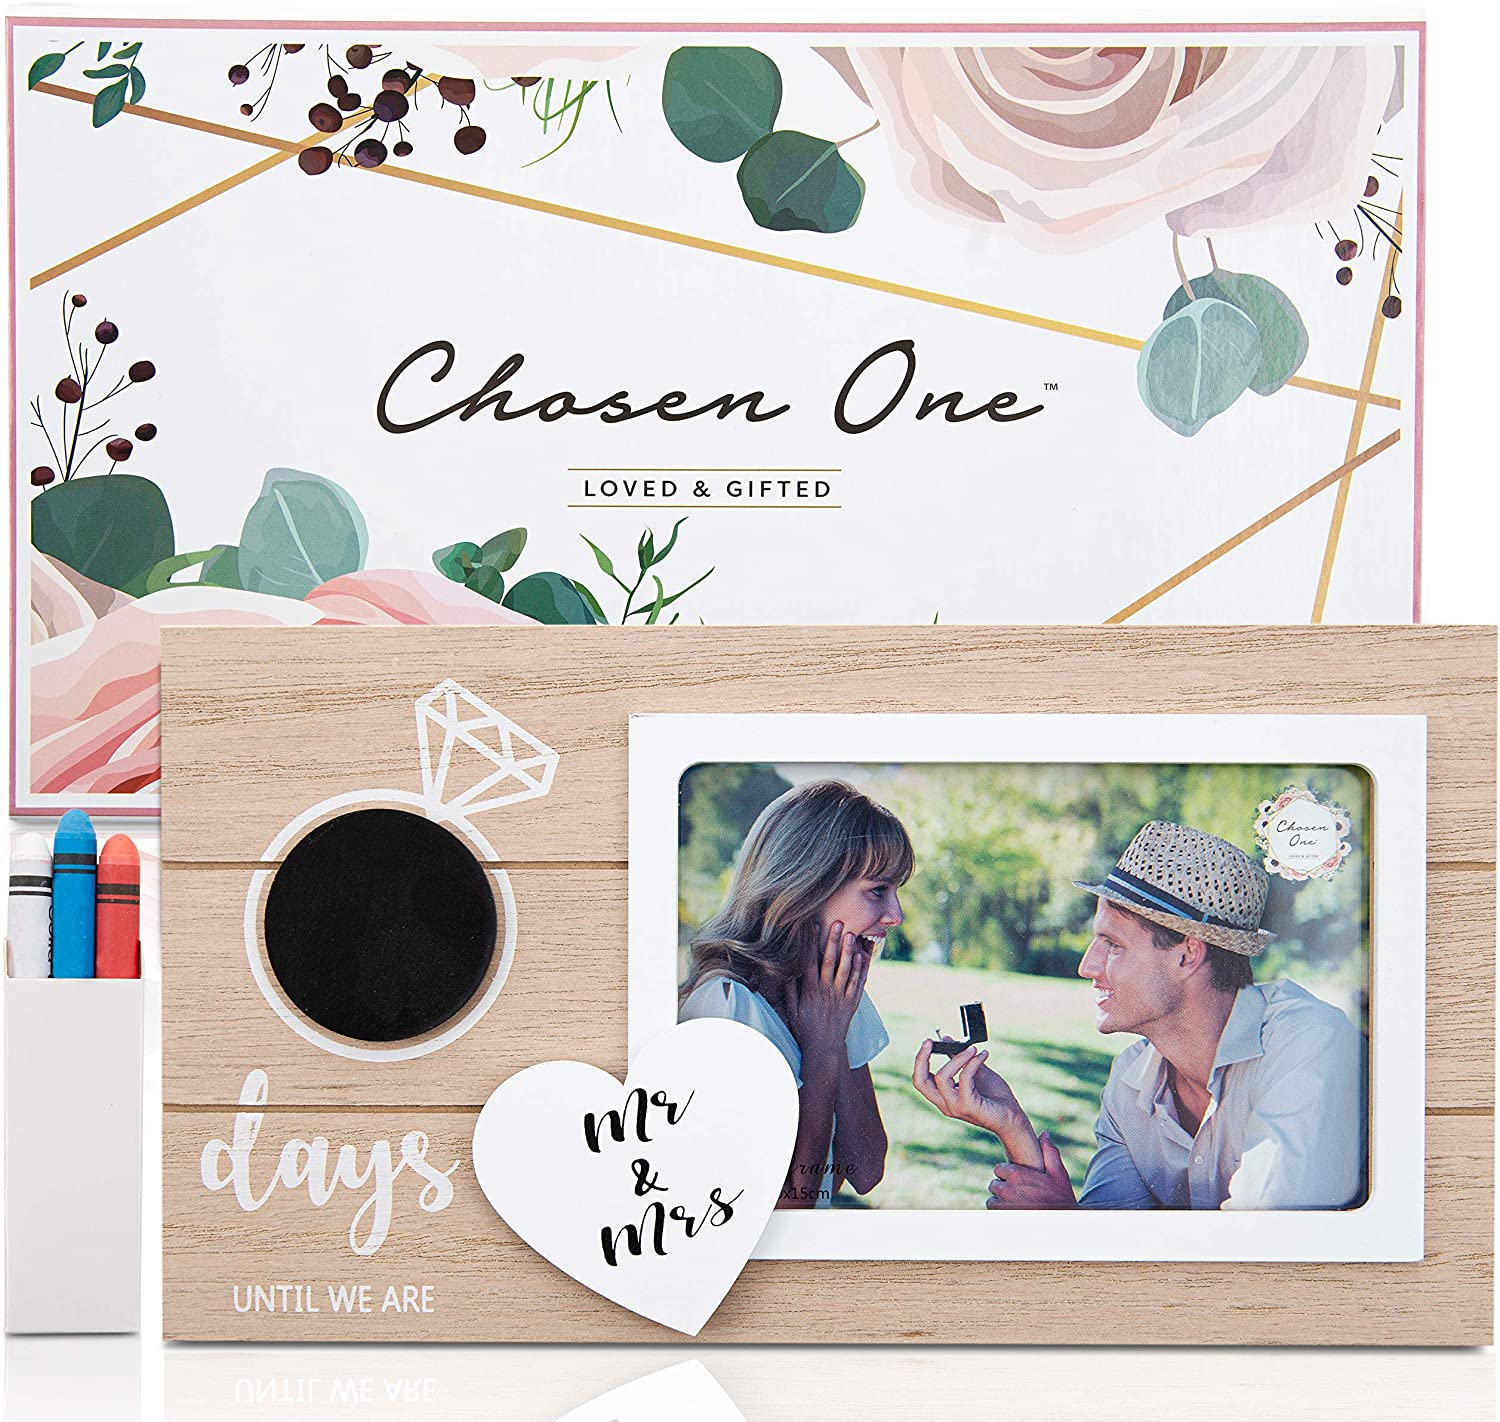 Chosen One Wedding Countdown Photo Frame - Couples 6x4 Photo Frame, Love Picture Frame with Tiny Chalkboard and Chalk! Mr and Mrs Sign for Bridal Shower Gifts, Engagement Gifts, Personalized Frames